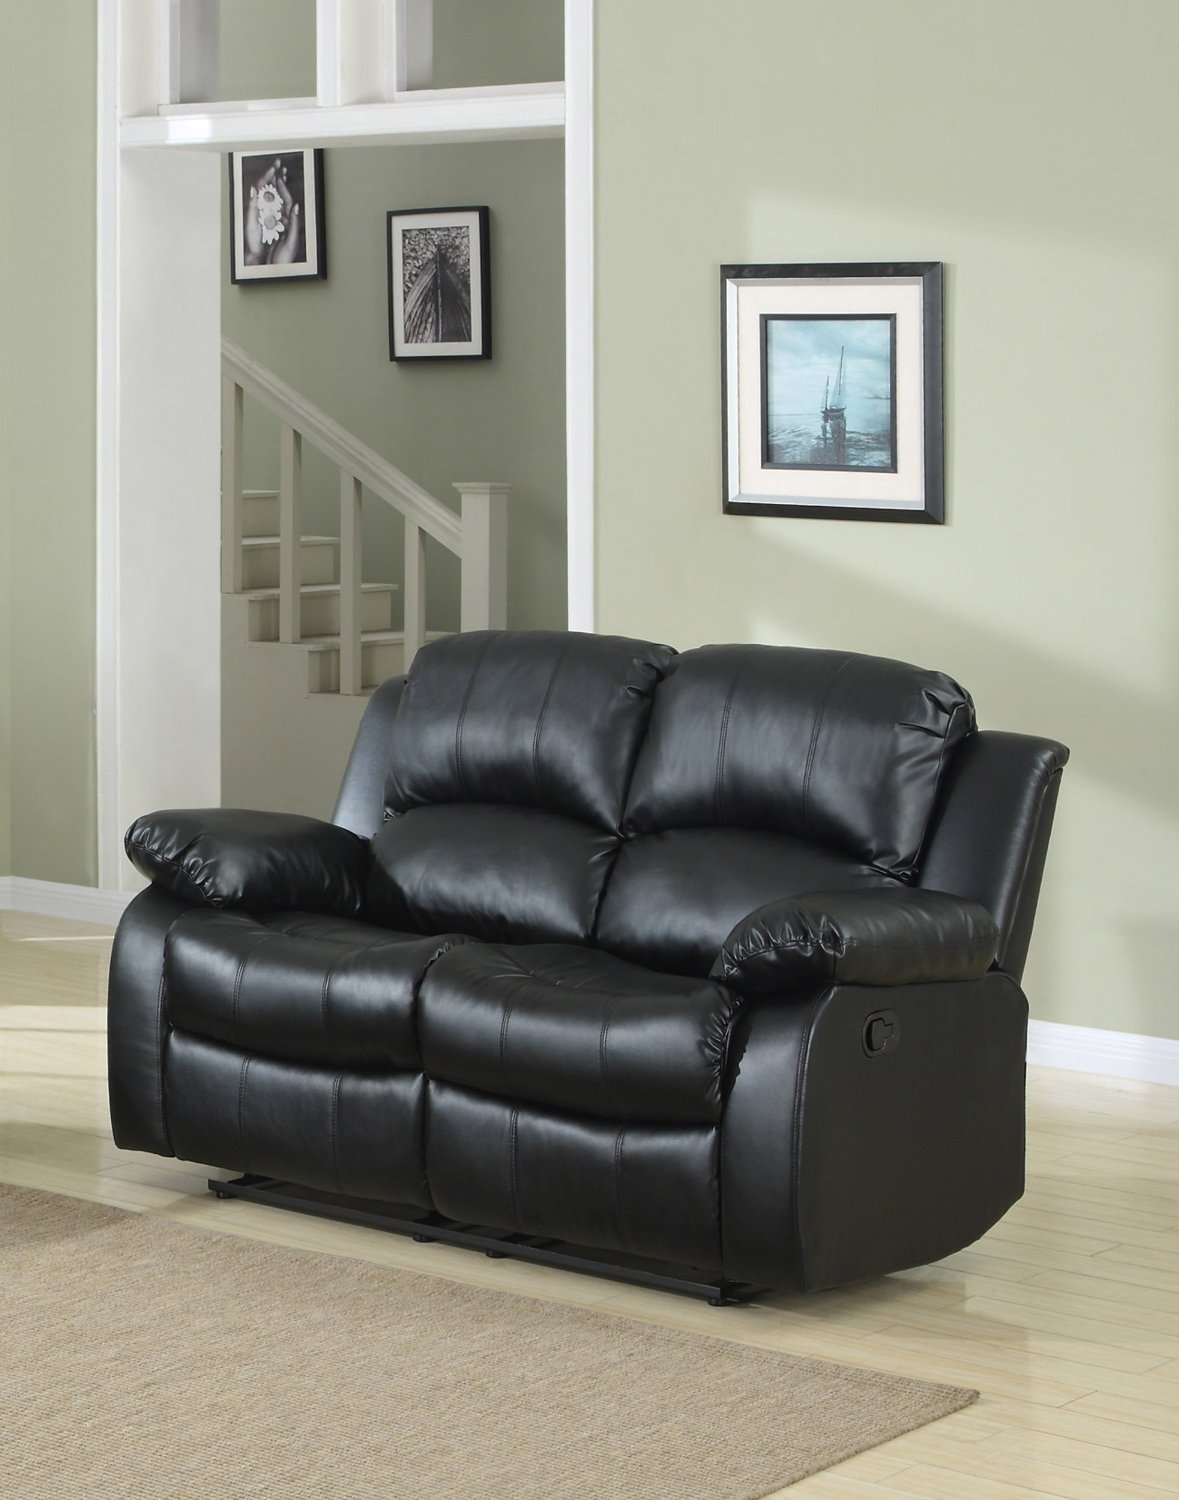 New Century® Black Bonded Faux Leather 2 Seater Recliner Chair